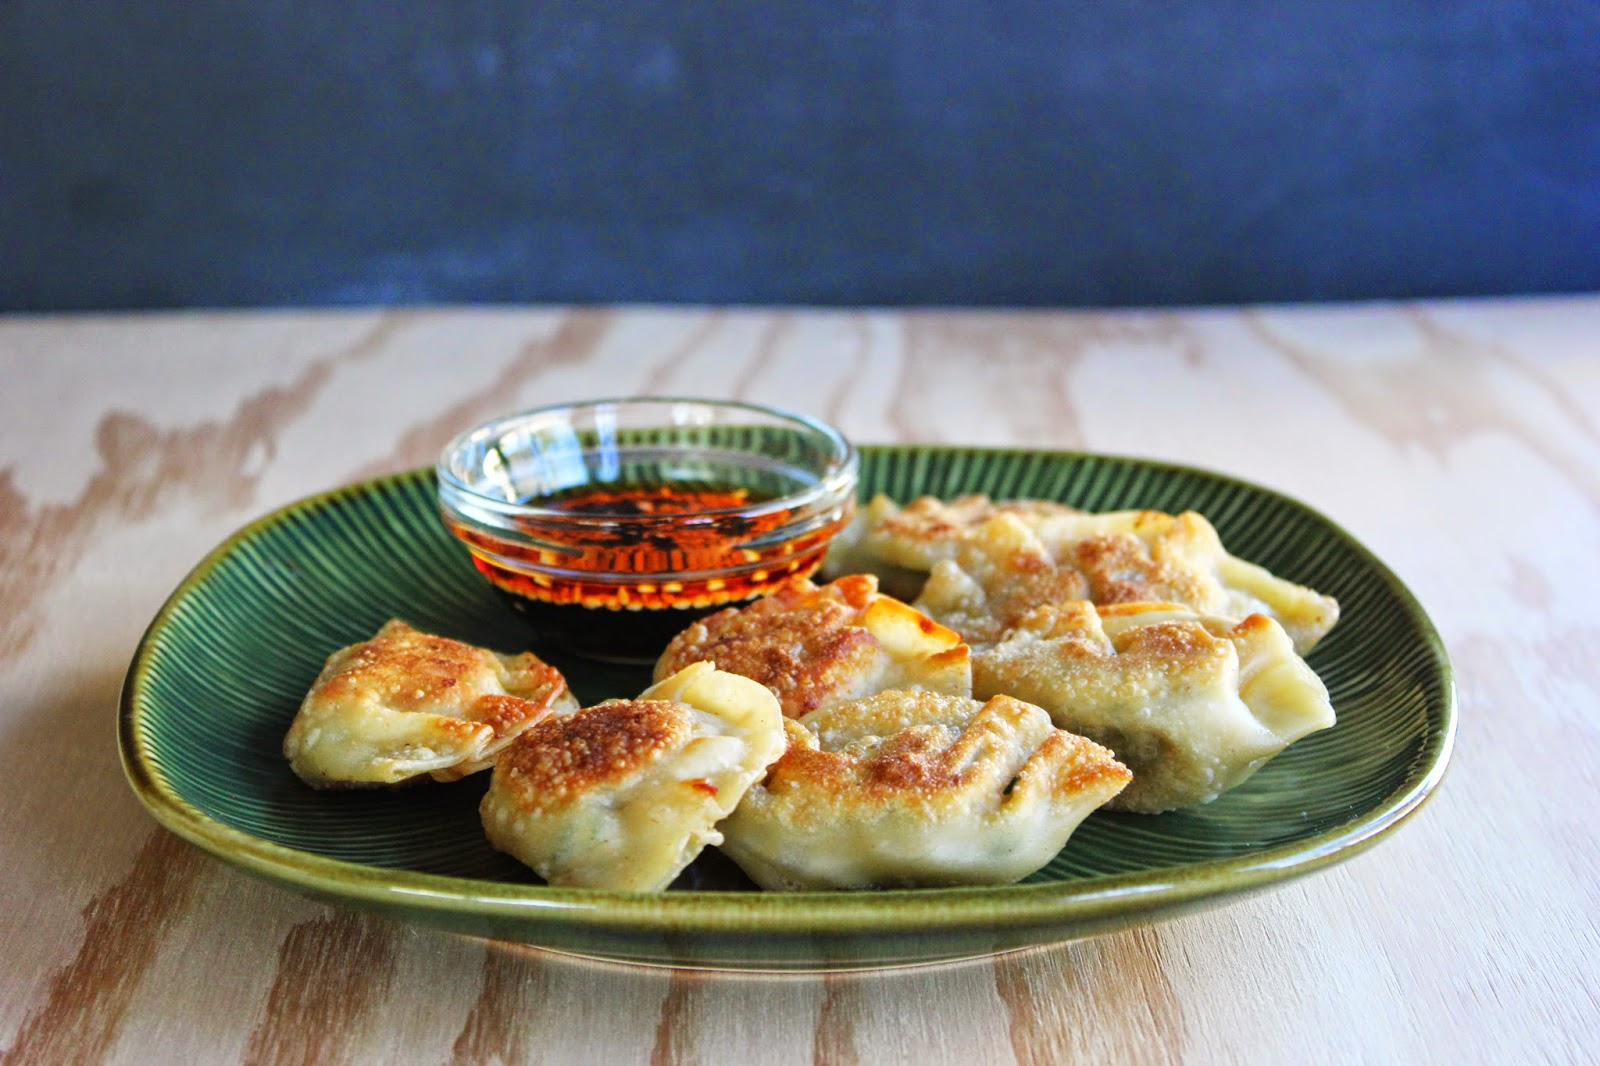 chive and pork pot stickers